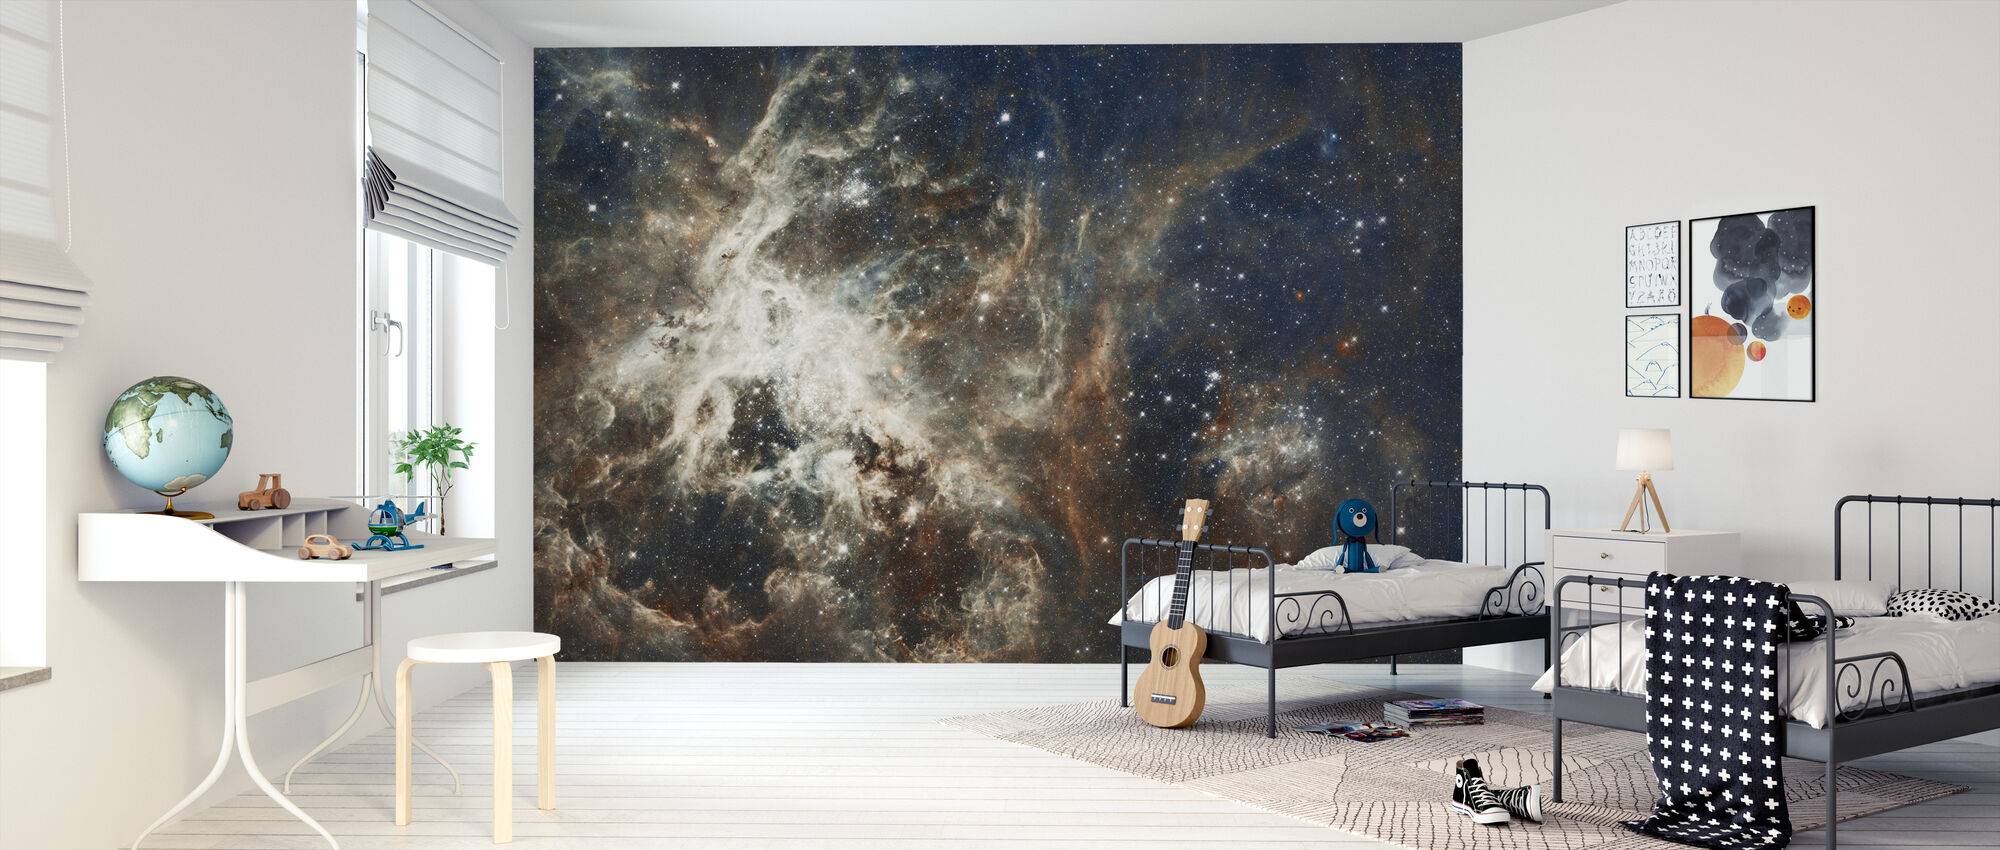 Galaxy - Wallpaper - Kids Room